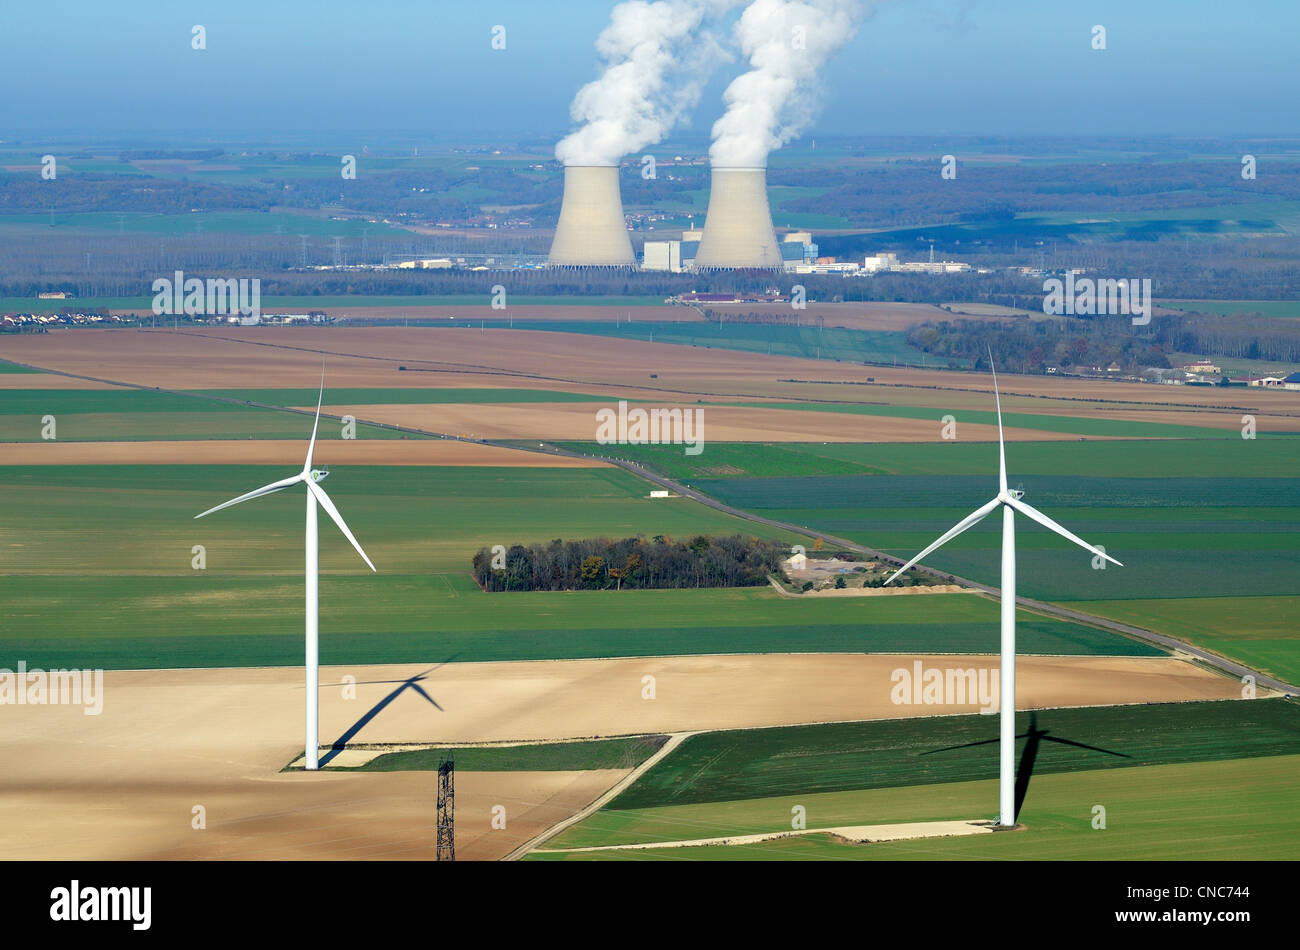 France, Aube, Nogent-sur-Seine, the nuclear power plant of Nogent-sur-Seine is the nearest to Paris, with wind turbines - Stock Image